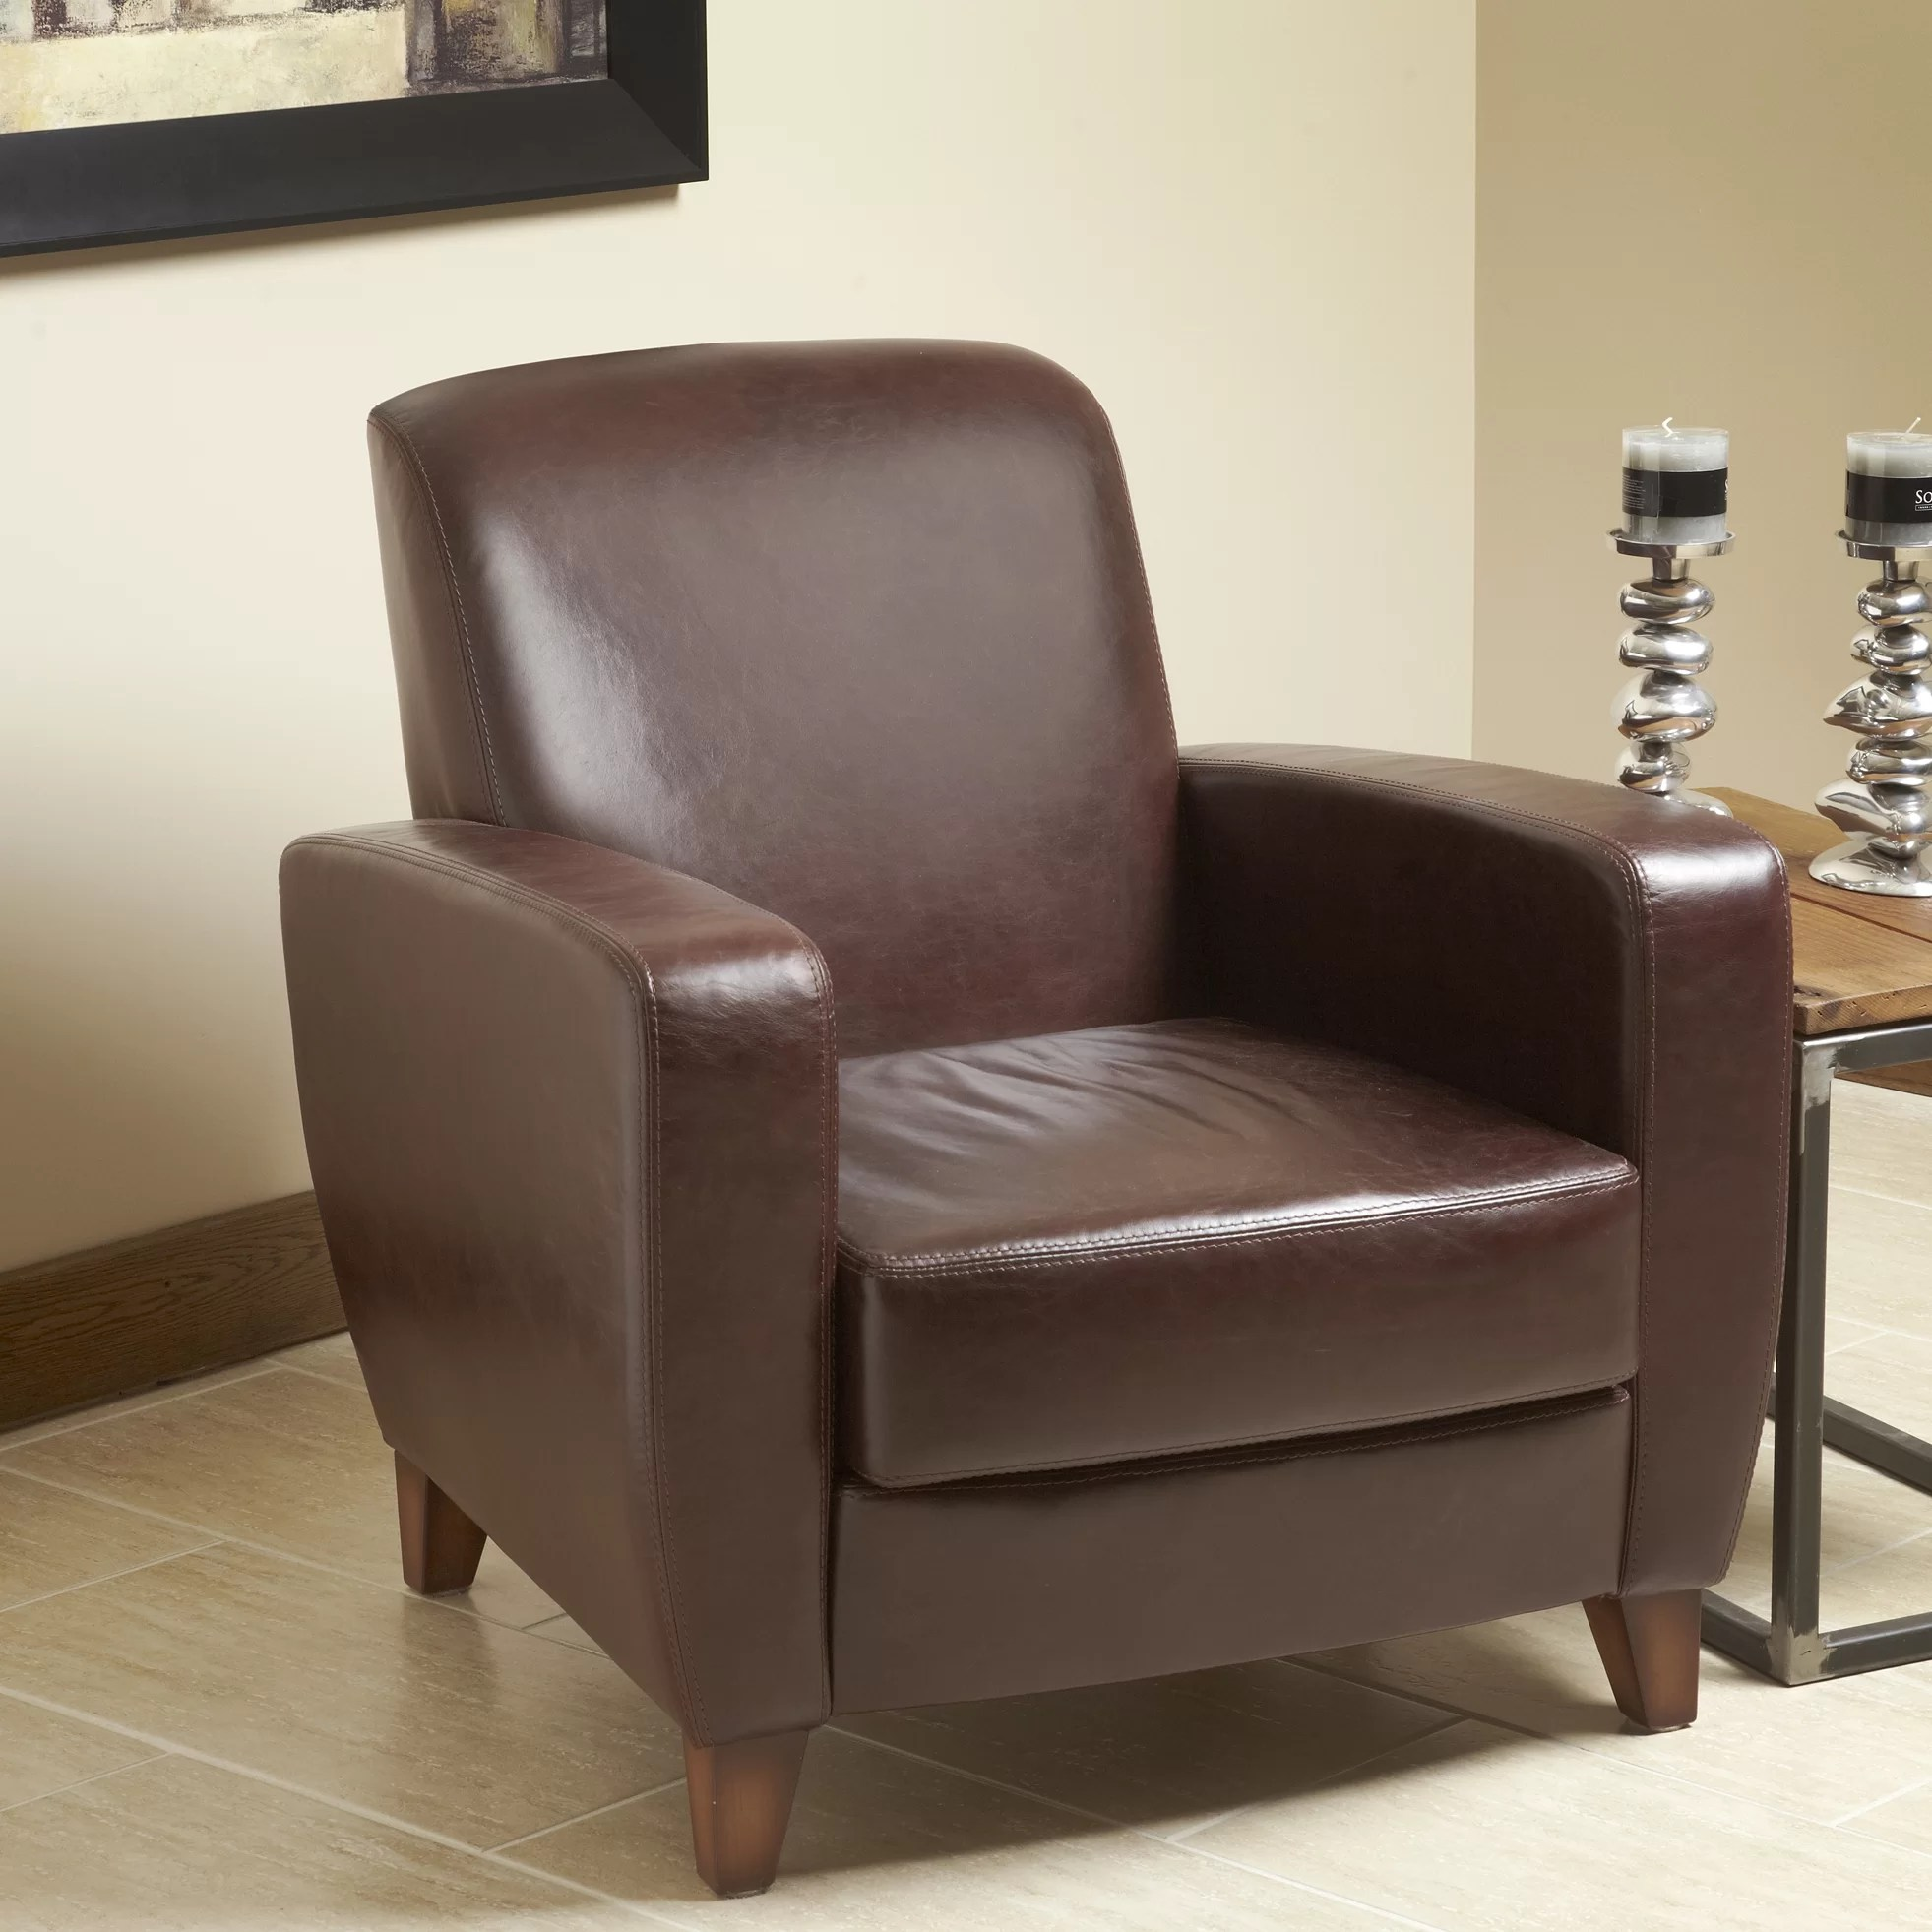 Top Grain Leather Office Chair Lind Furniture Modavi Top Grain Leather Club Chair Wayfair